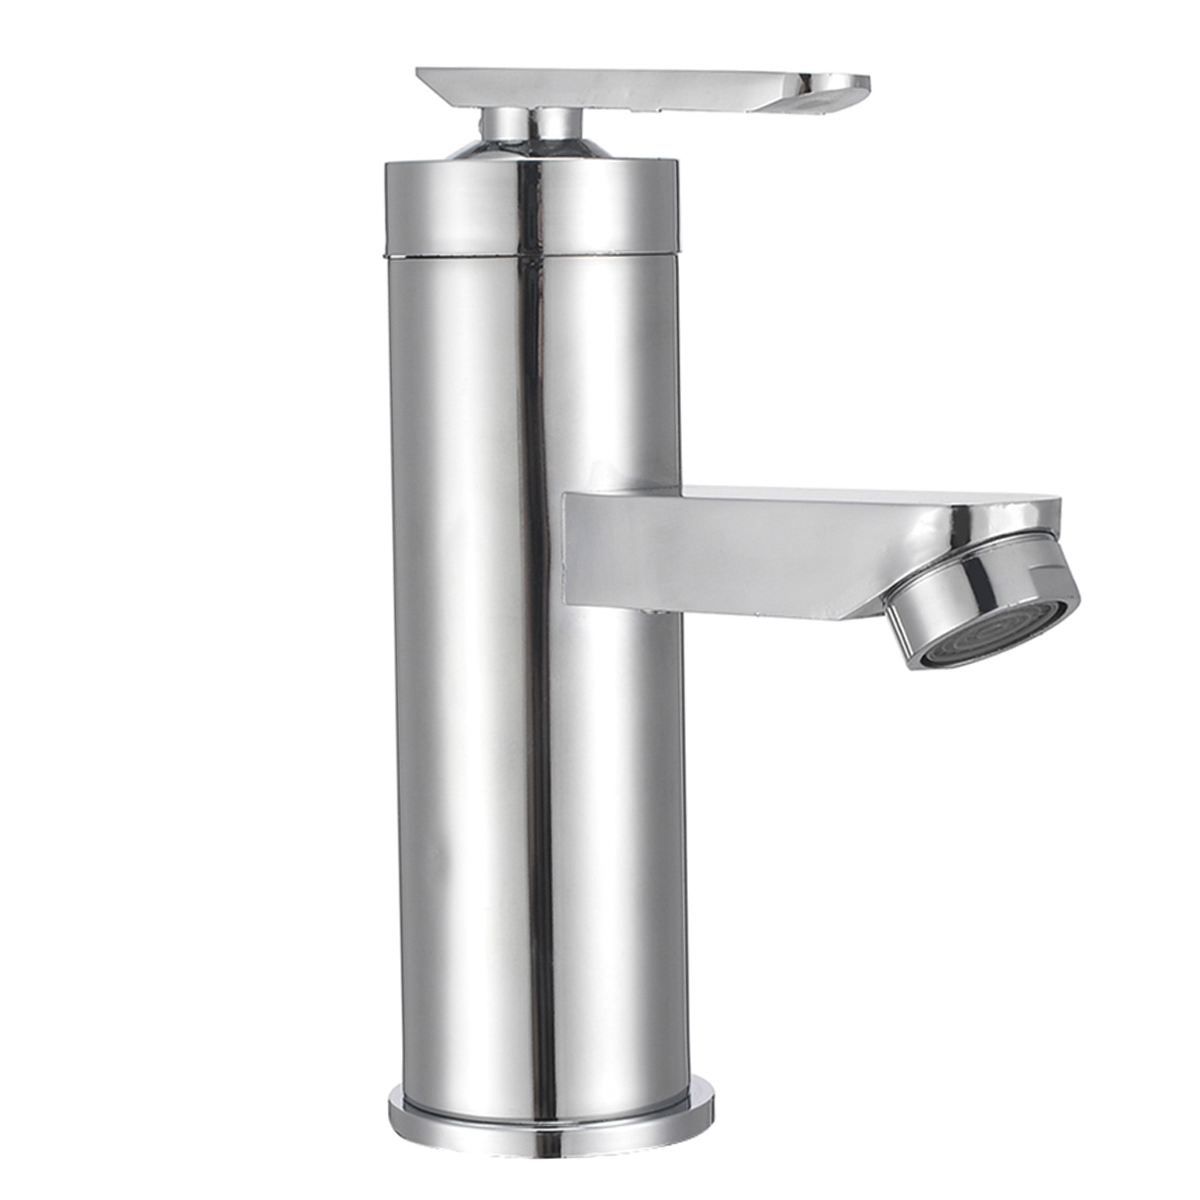 Mayitr Waterfall Bathroom Basin Faucet Chrome Single Handle Sink Cold Hot Mixer Tap For Kitchen Bathroom Hardware